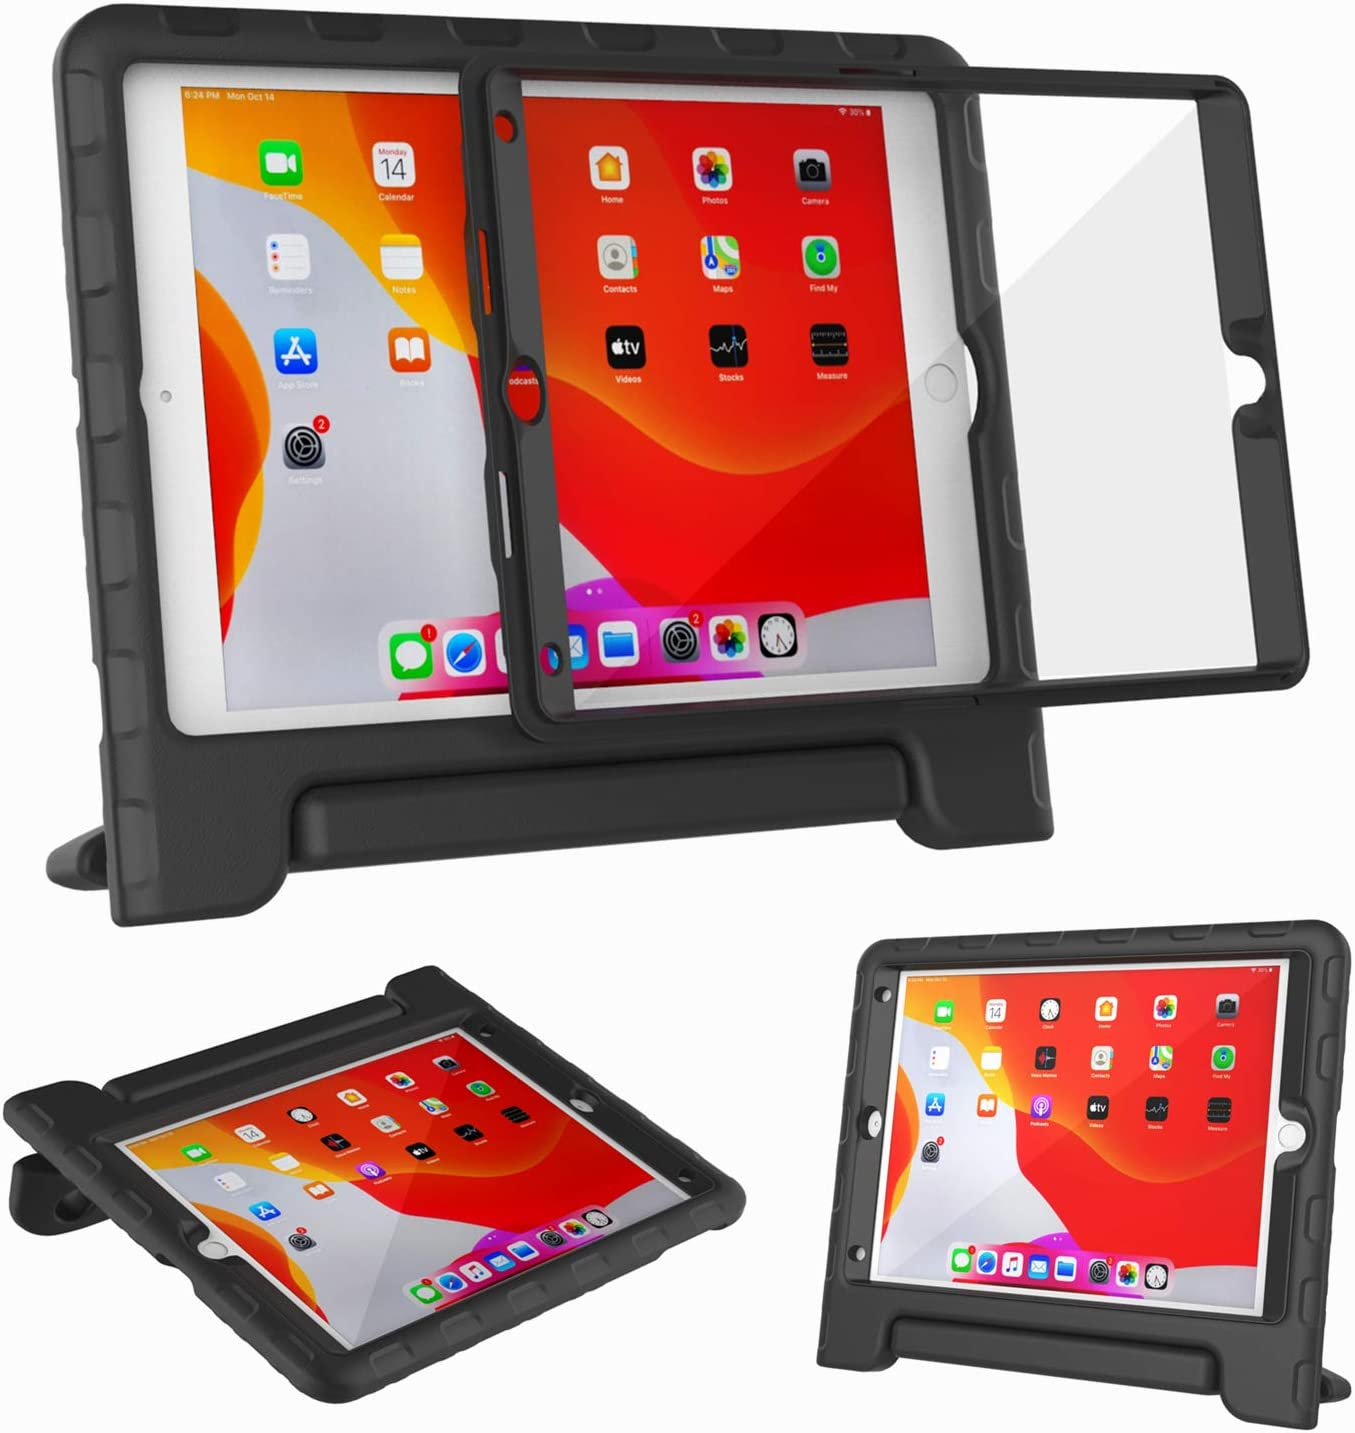 """Kids Case for iPad 10.2"""" 8th & 7th Generation 2020/2019 - with Built-in Screen Protector, Shockproof Lightweight Handle Stand Kids Case for iPad 10.2"""" 2020 Latest Model Cover (Black)"""